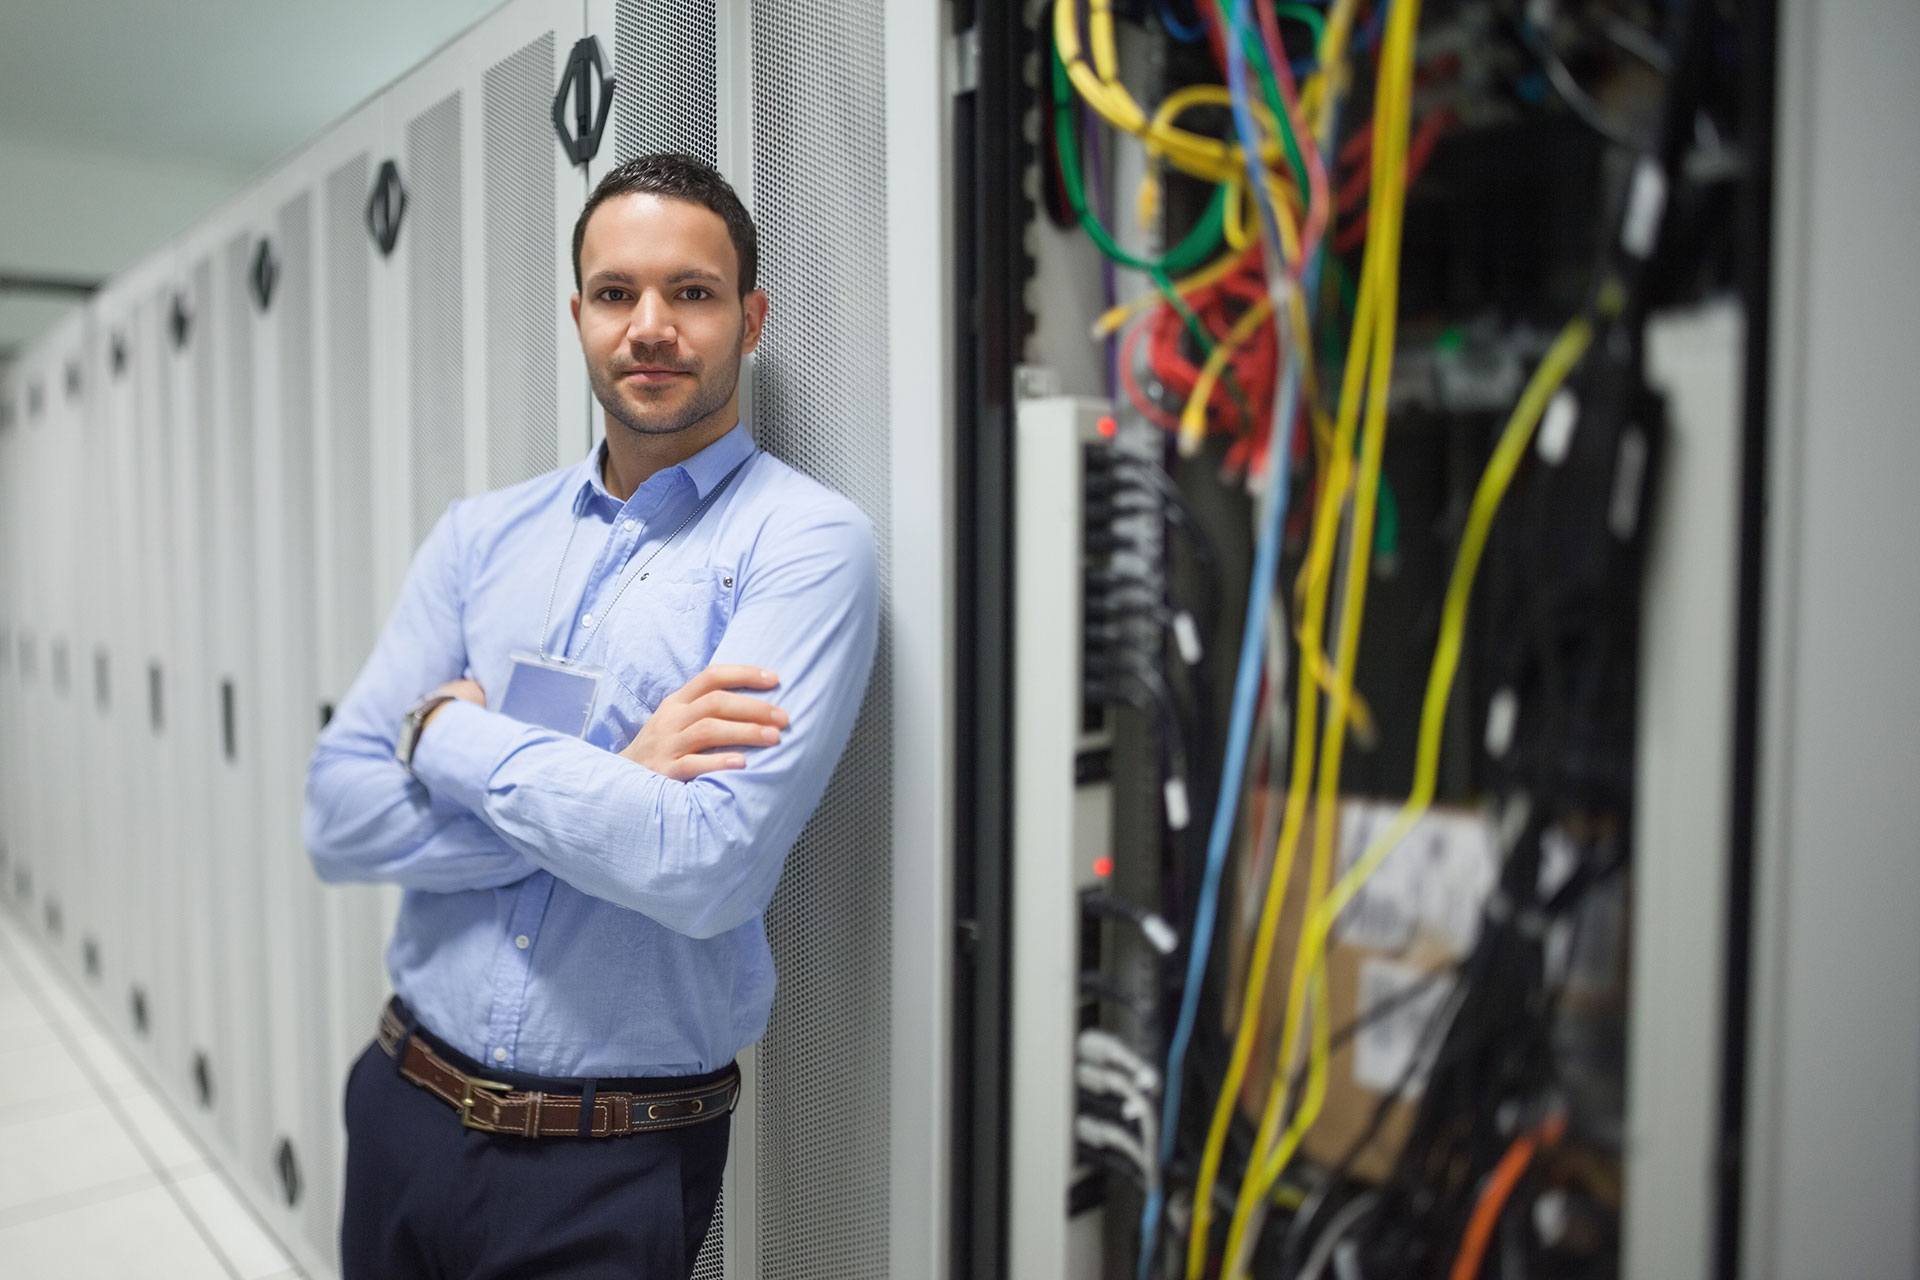 All About Computer Support Specialist and Systems Administrator Careers